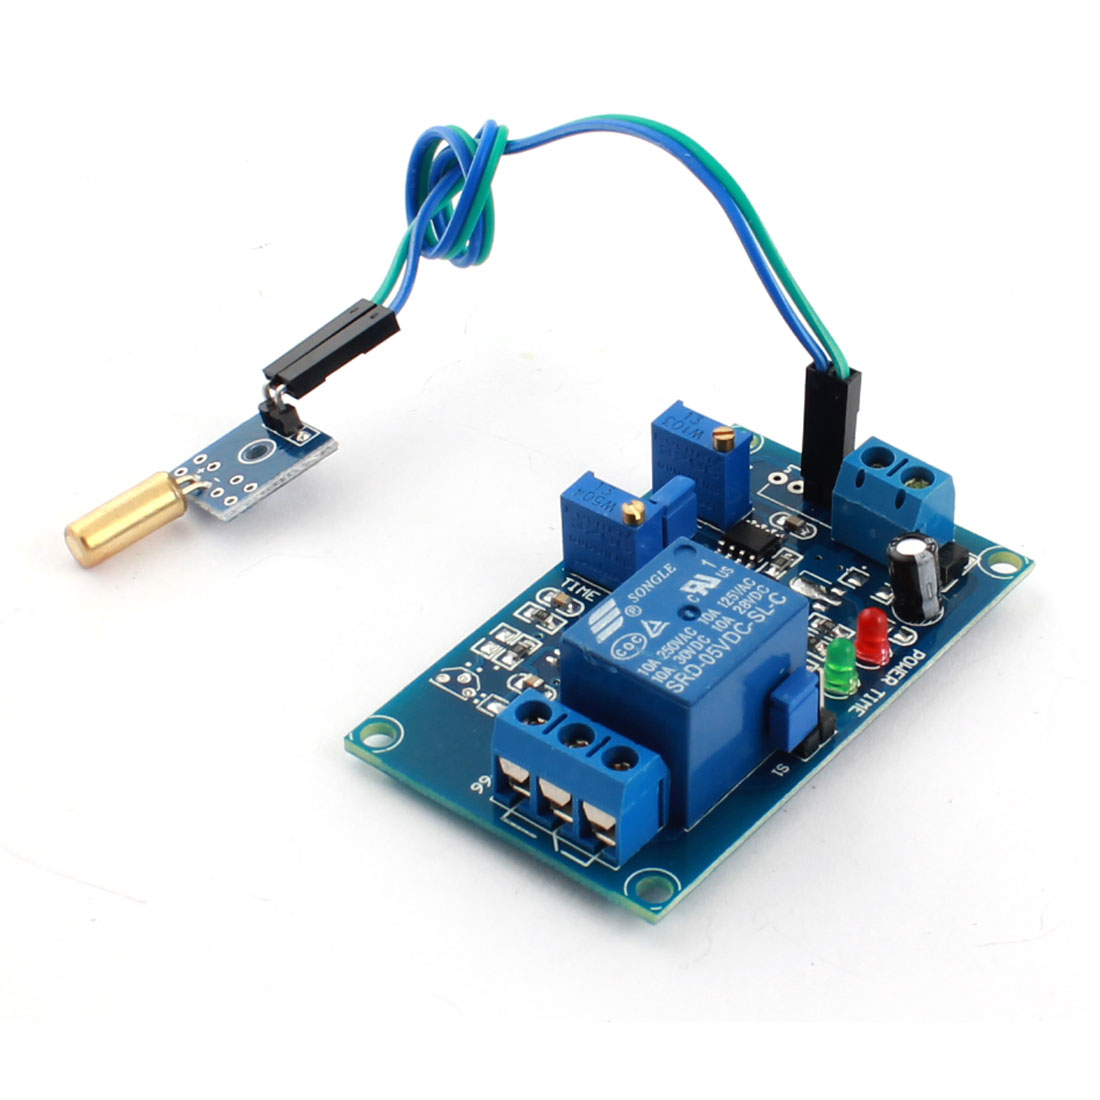 DC 5V 1 Channel Dumping Angle Sensor Time Delay Relay Module